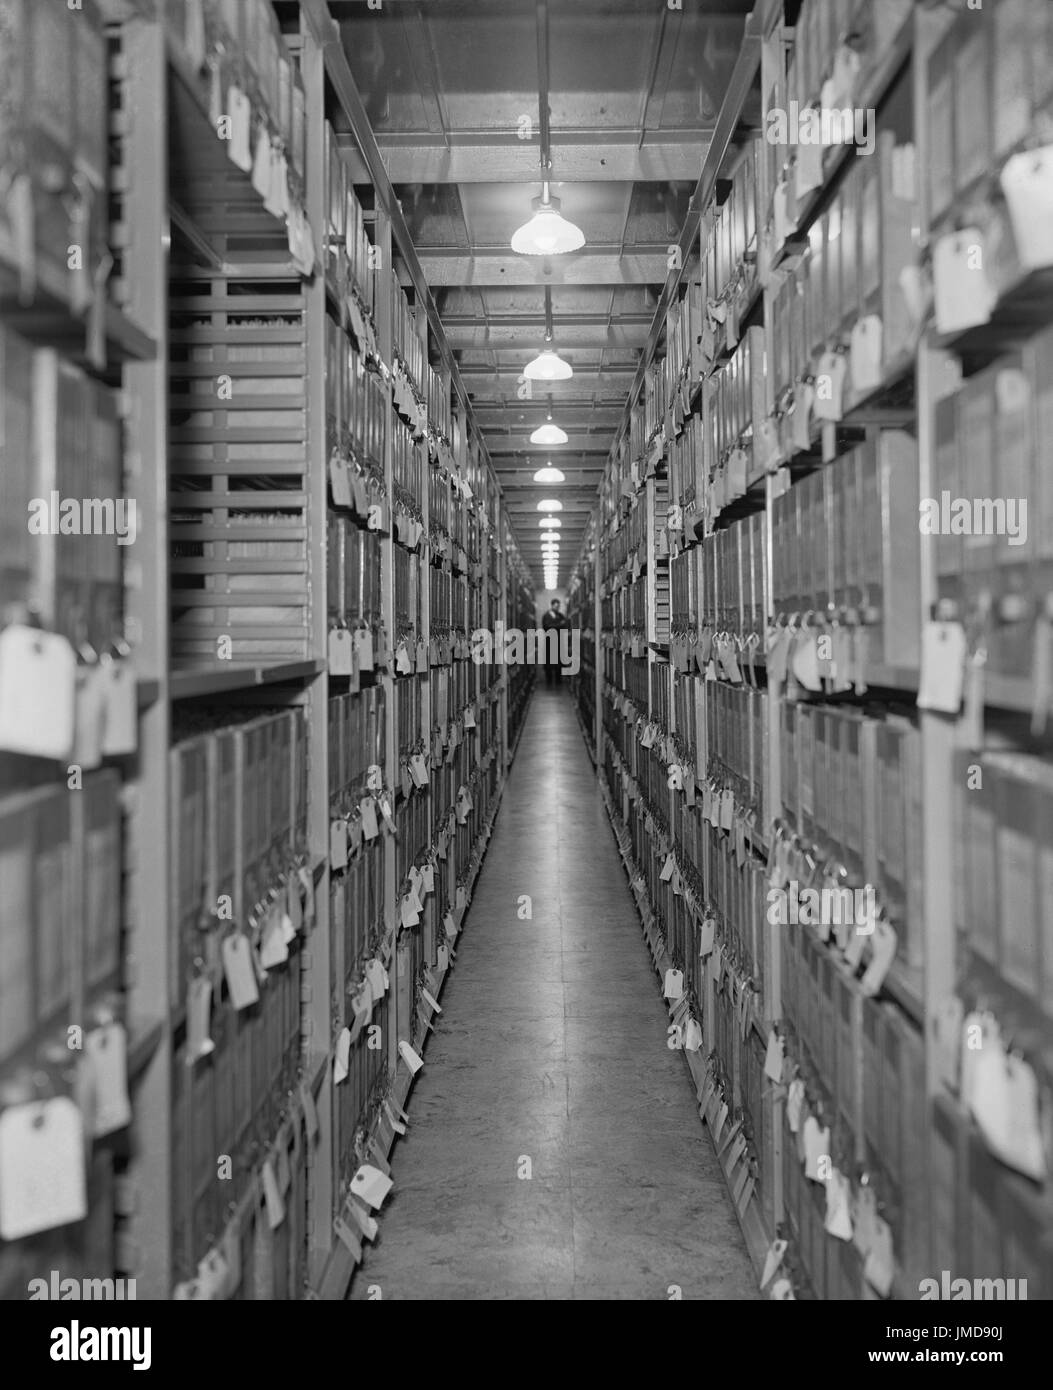 Aisle of Files, Division of War Department, National Archives, Washington DC, USA, Harris & Ewing, 1939 - Stock Image